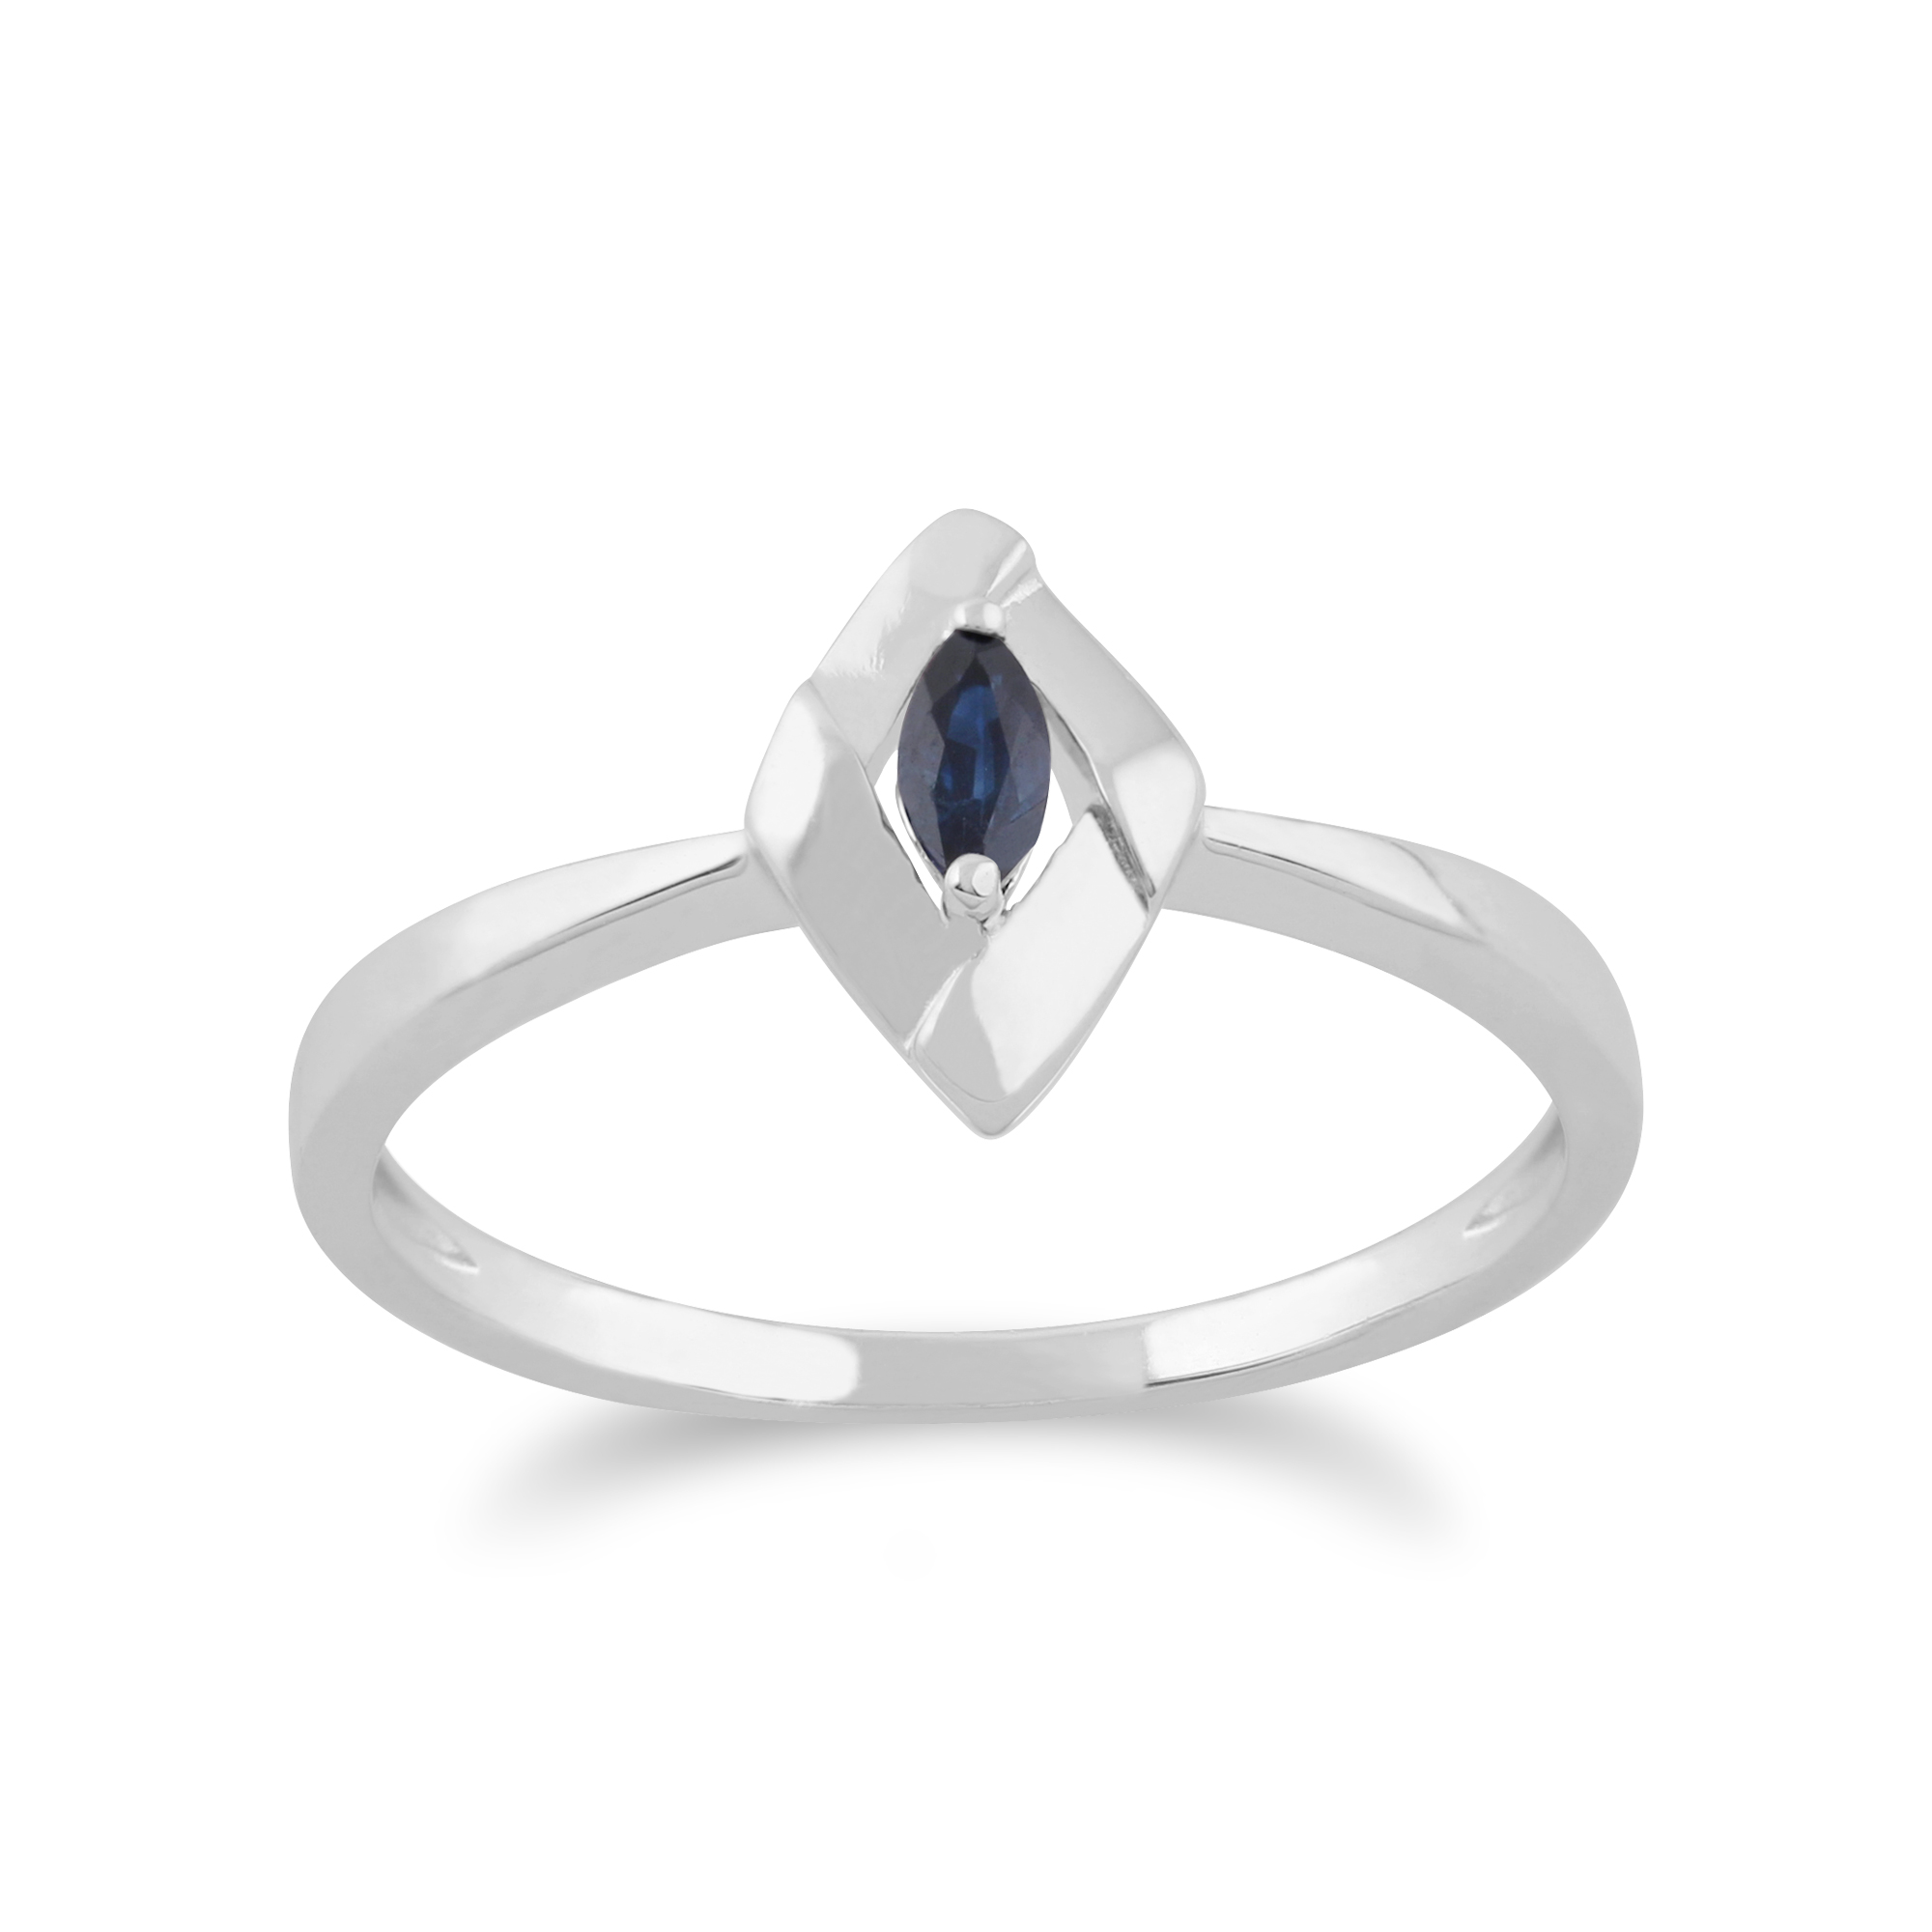 Gemondo 925 Sterling Silver 0.13ct Sapphire Stackable Birthstone Ring